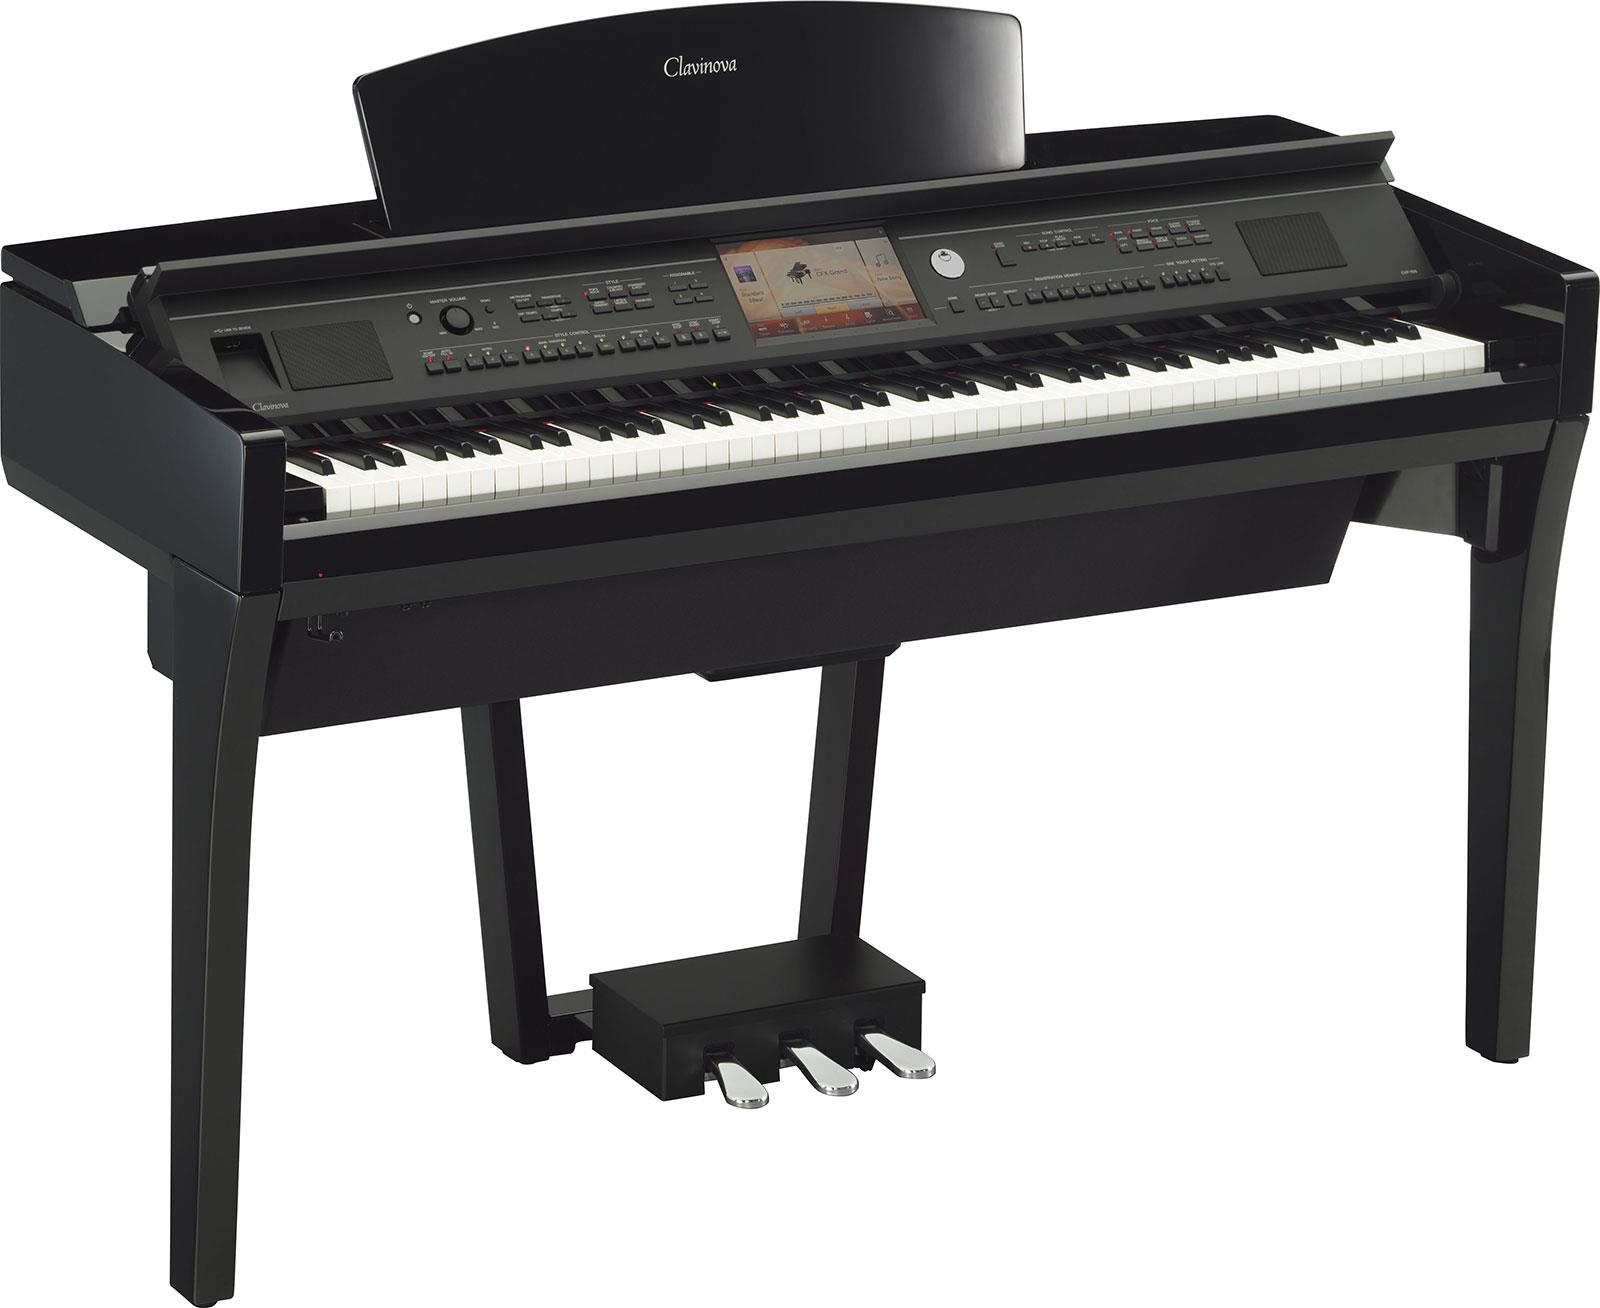 Yamaha clavinova cvp 709pe polished ebony keymusic for Yamaha clavinova price list